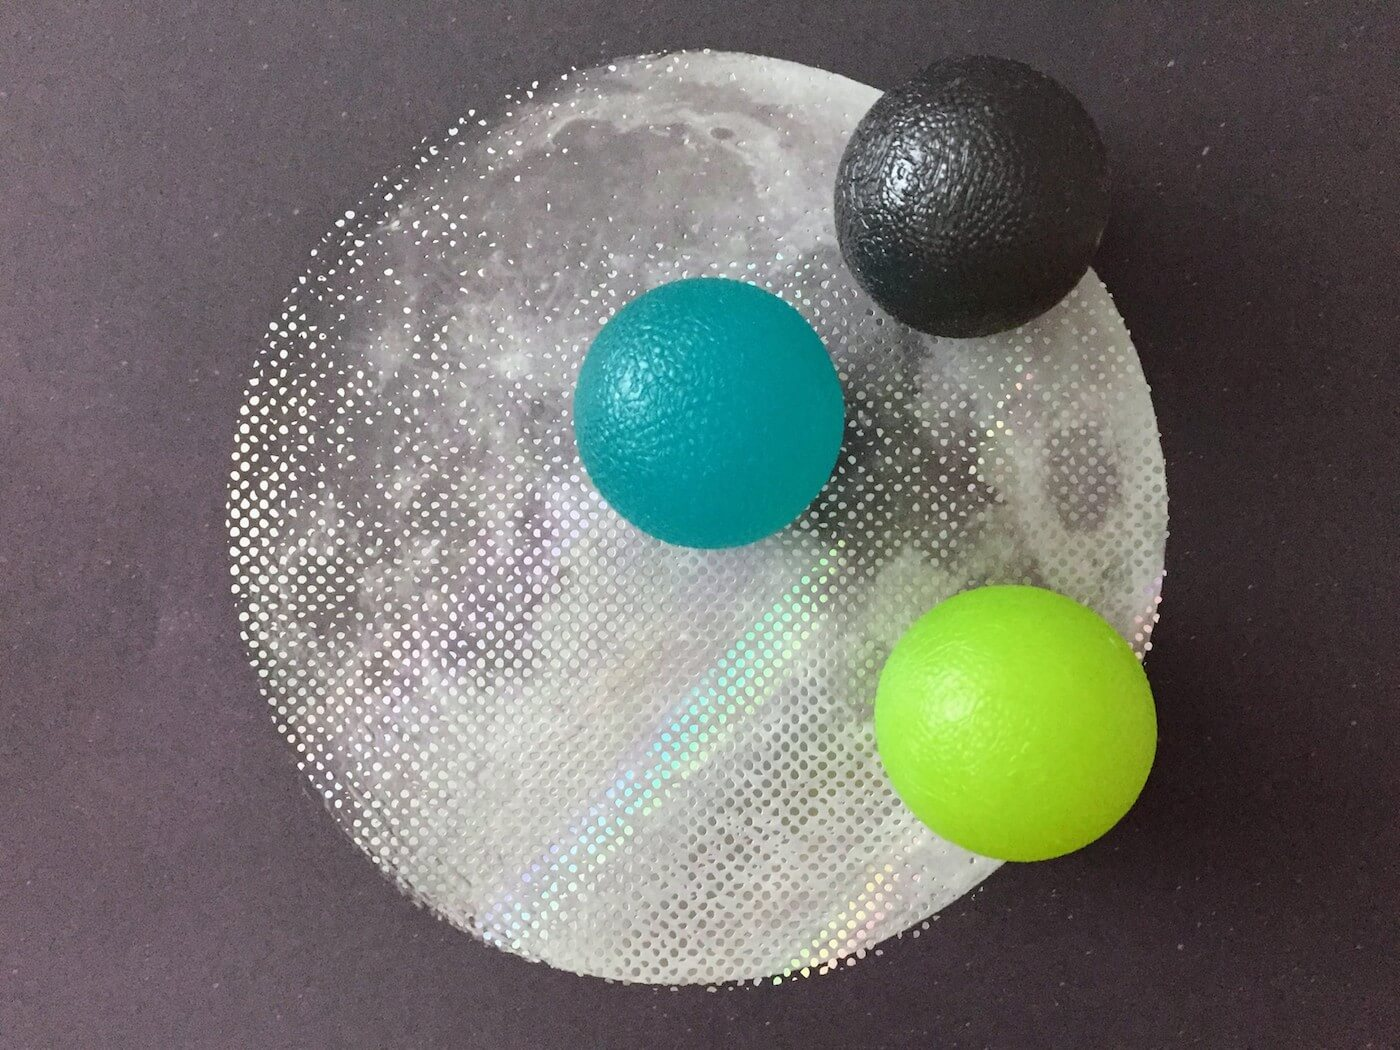 gaiam hand therapy exercise balls review